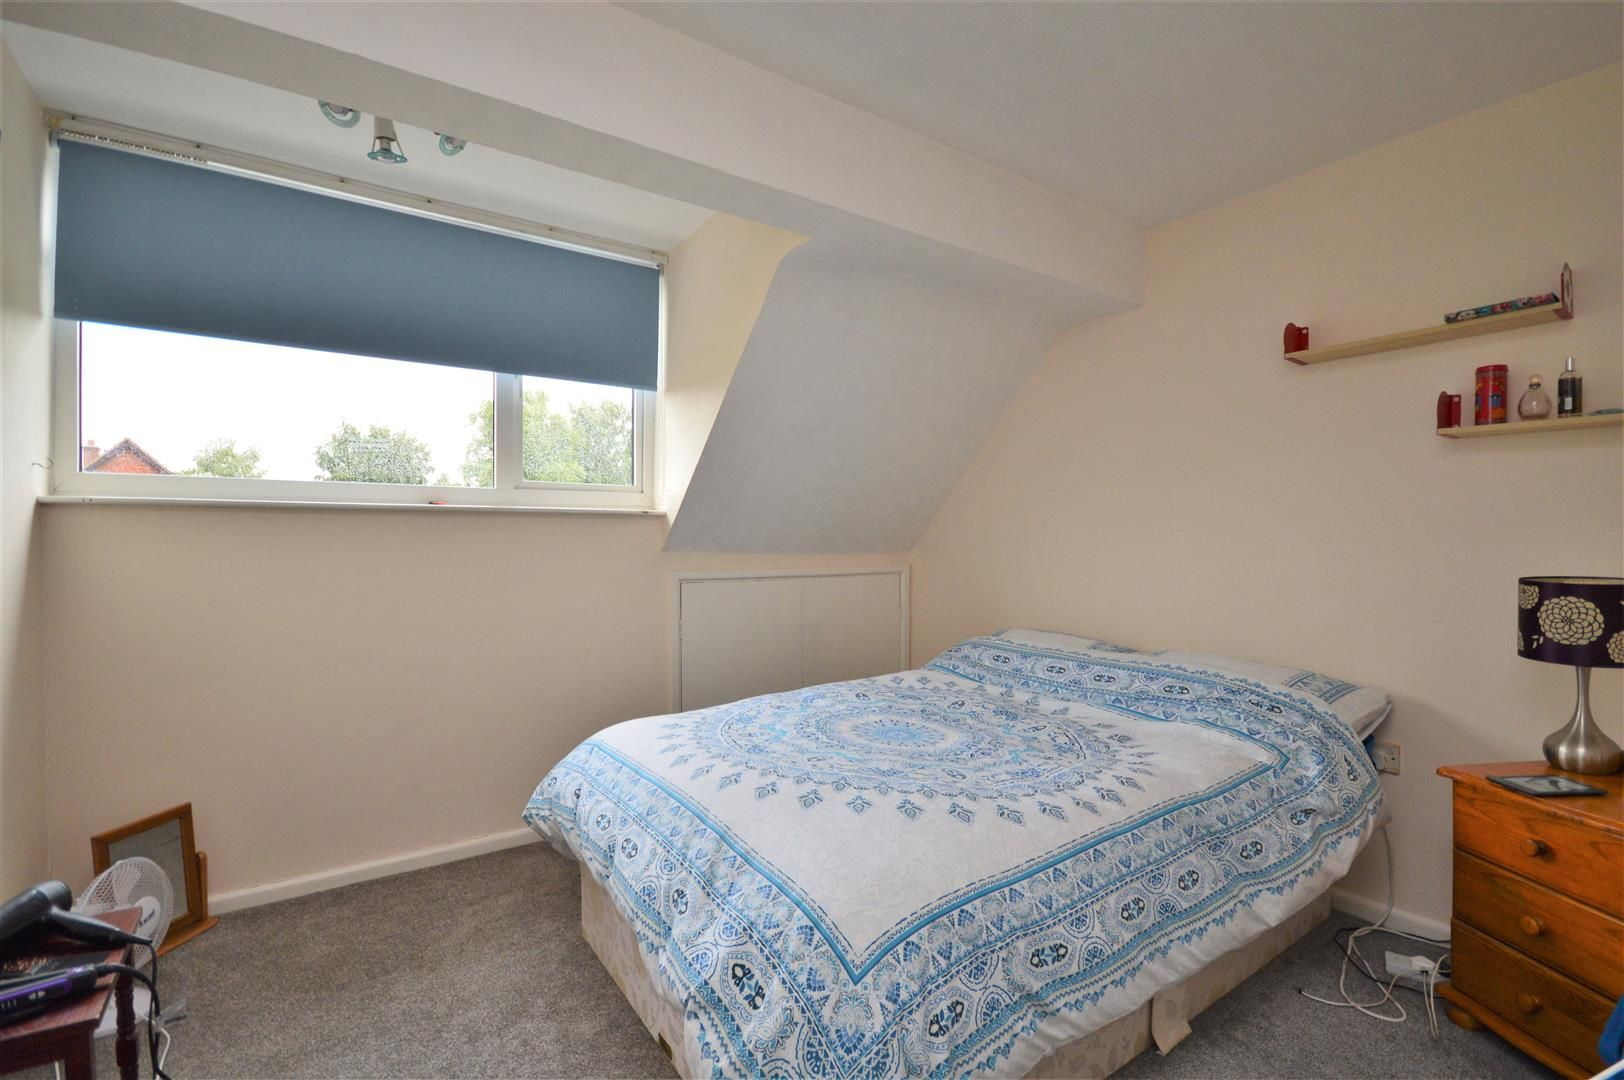 4 bed semi-detached for sale in Clehonger 12